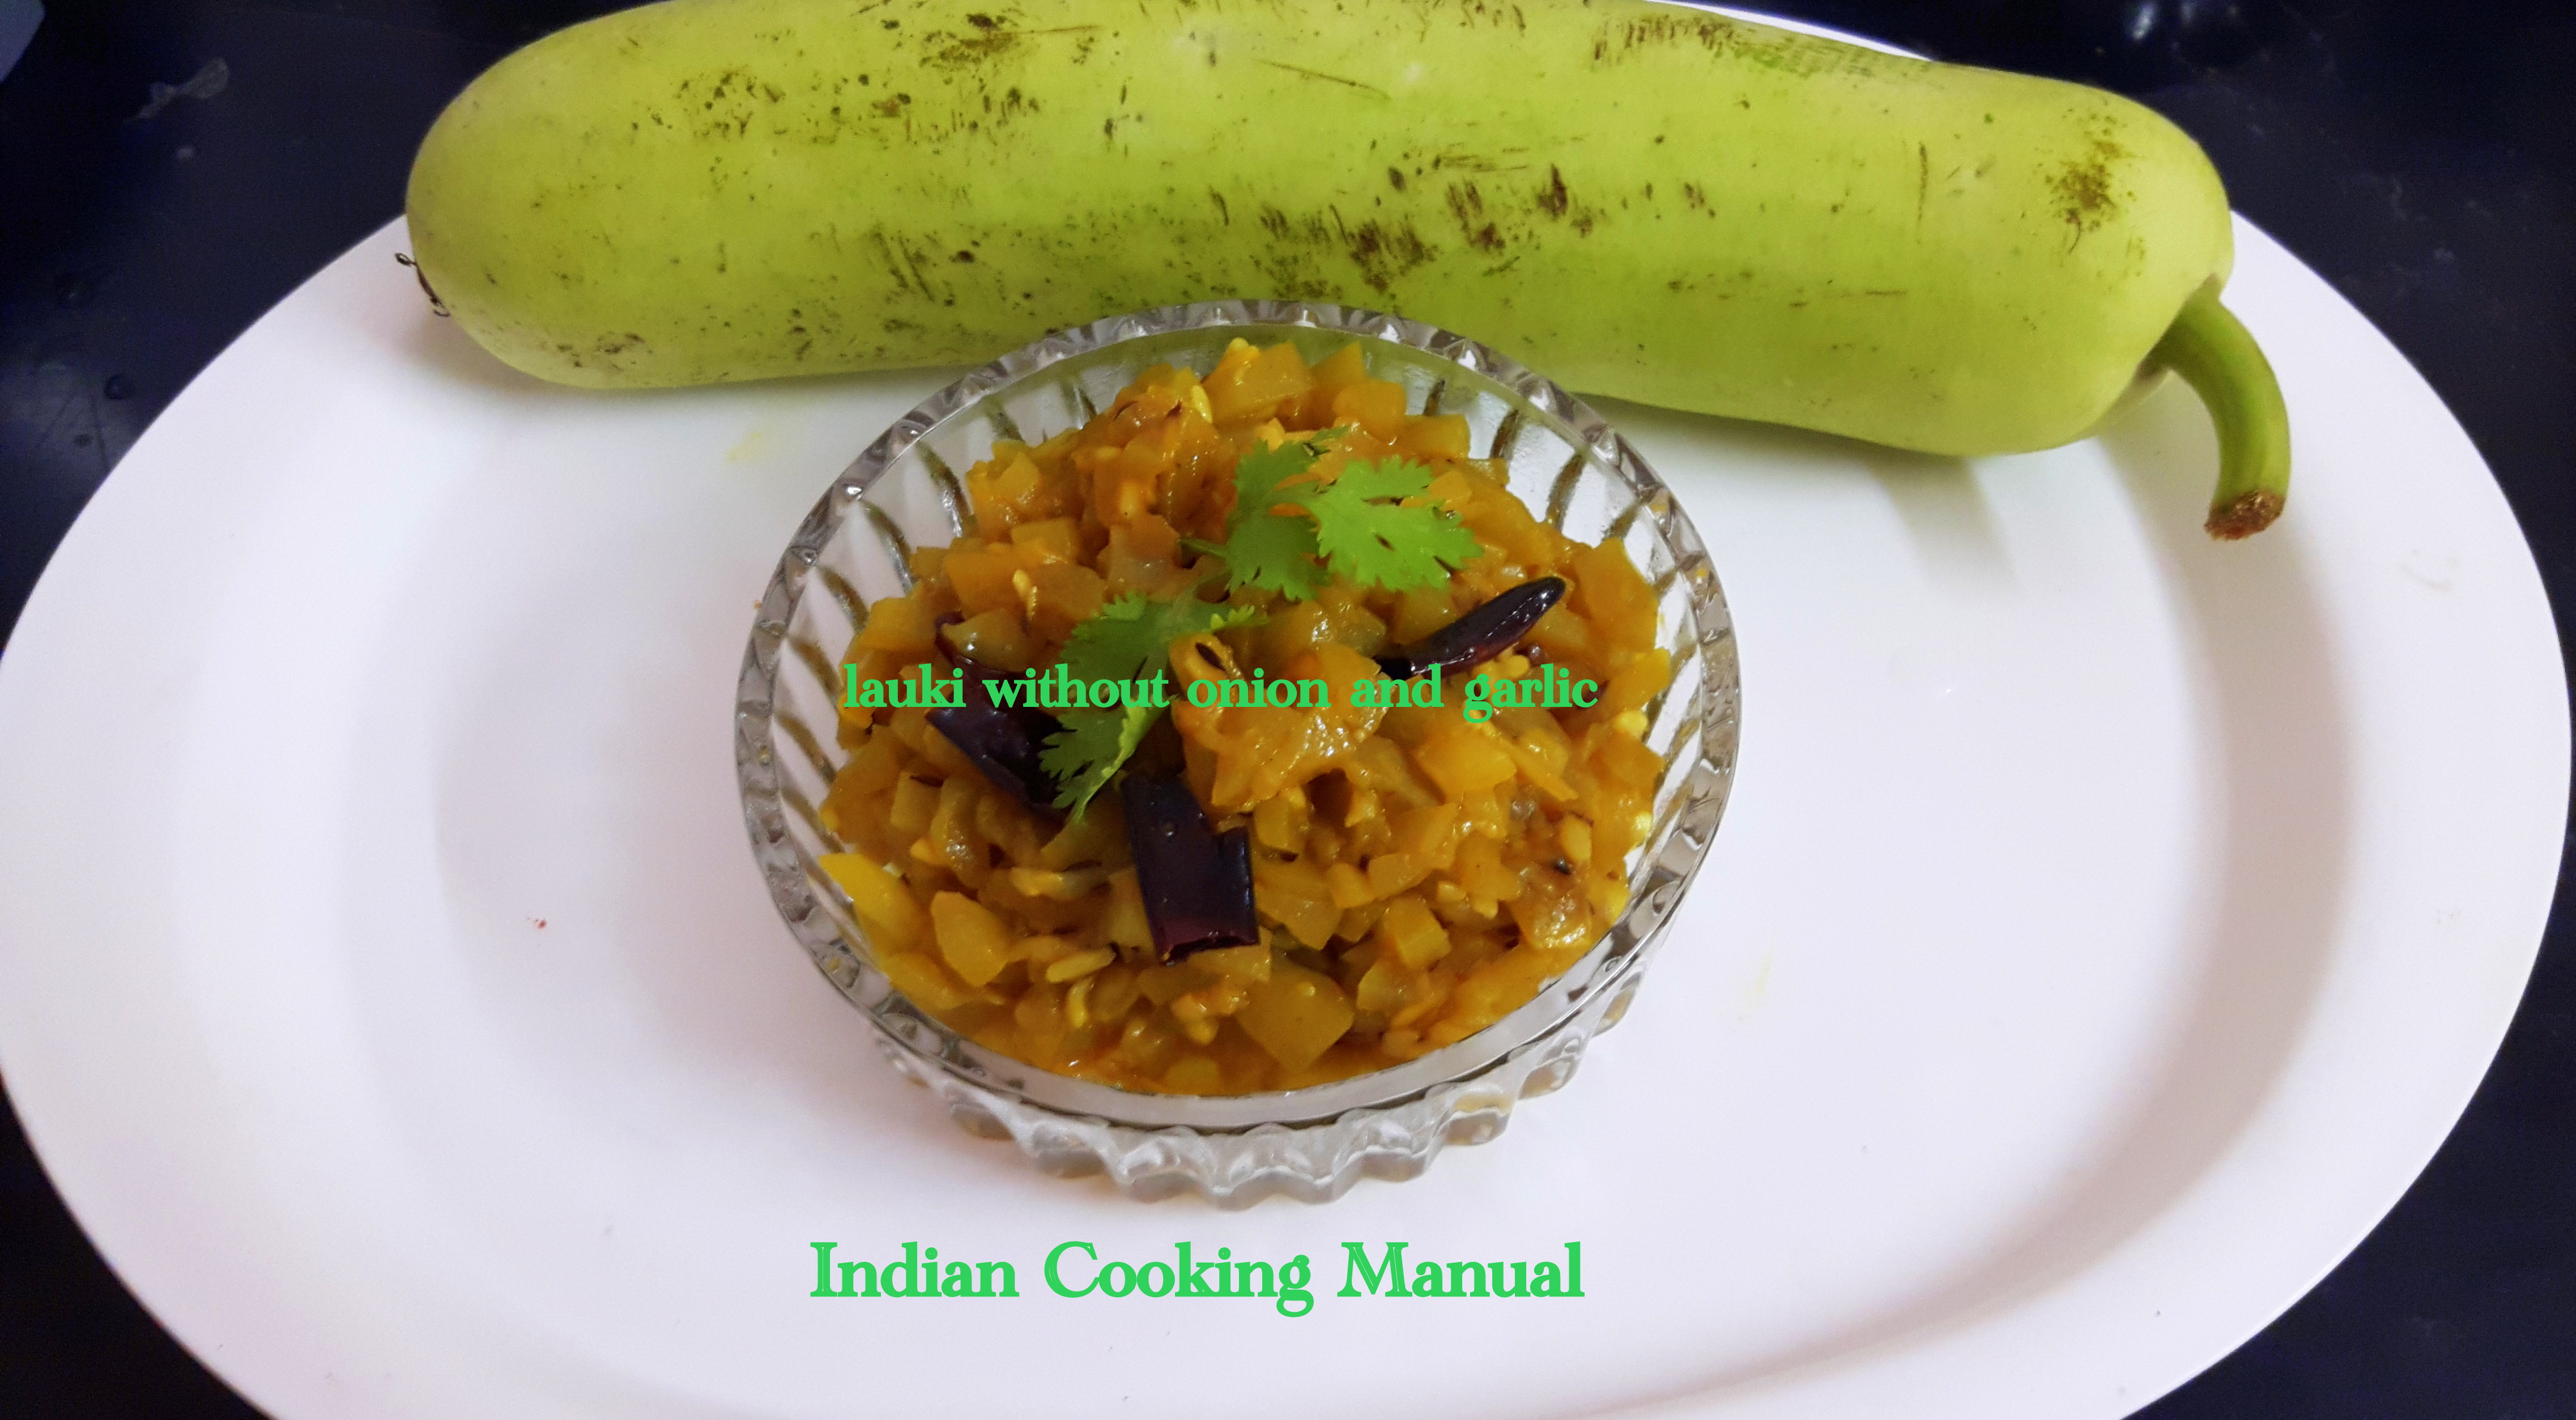 Lauki (bottle gourd) without onion and garlic